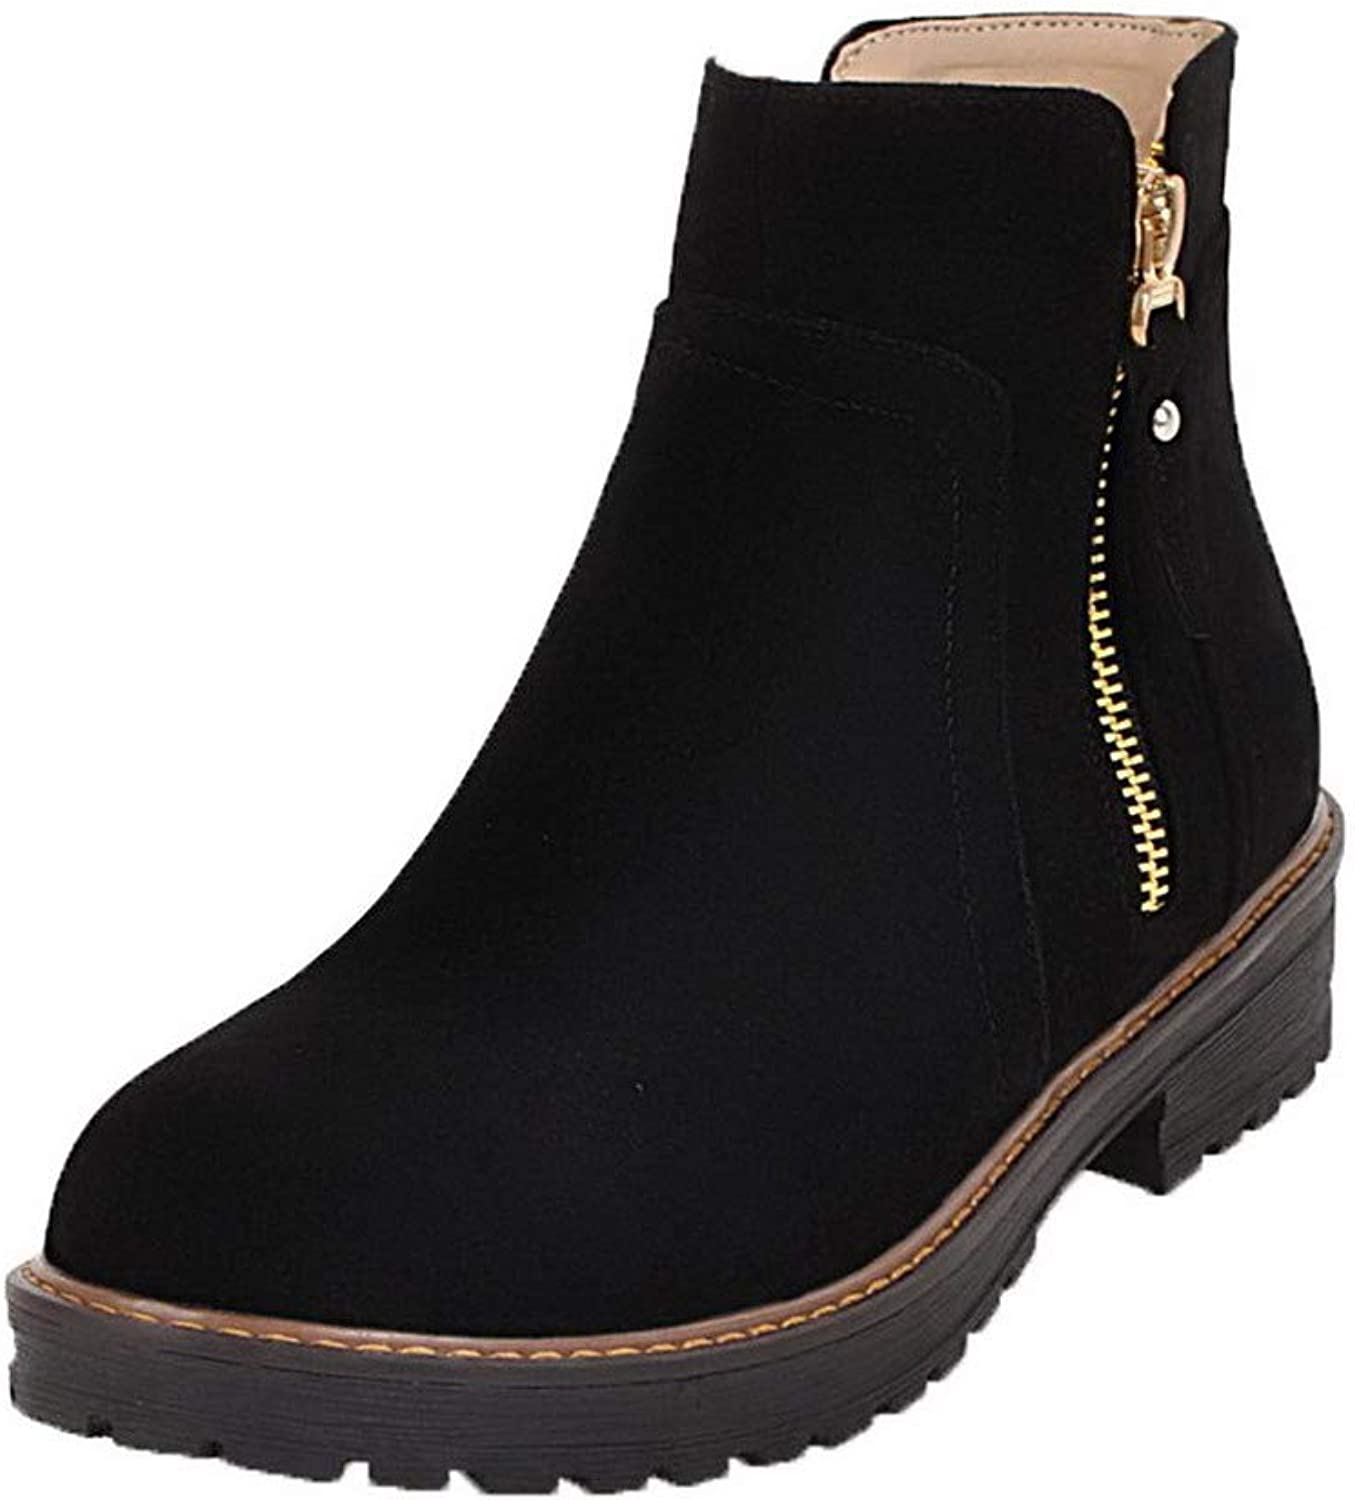 AllhqFashion Women's Solid Frosted Low-Heels Zipper Round-Toe Boots, FBUXD134756